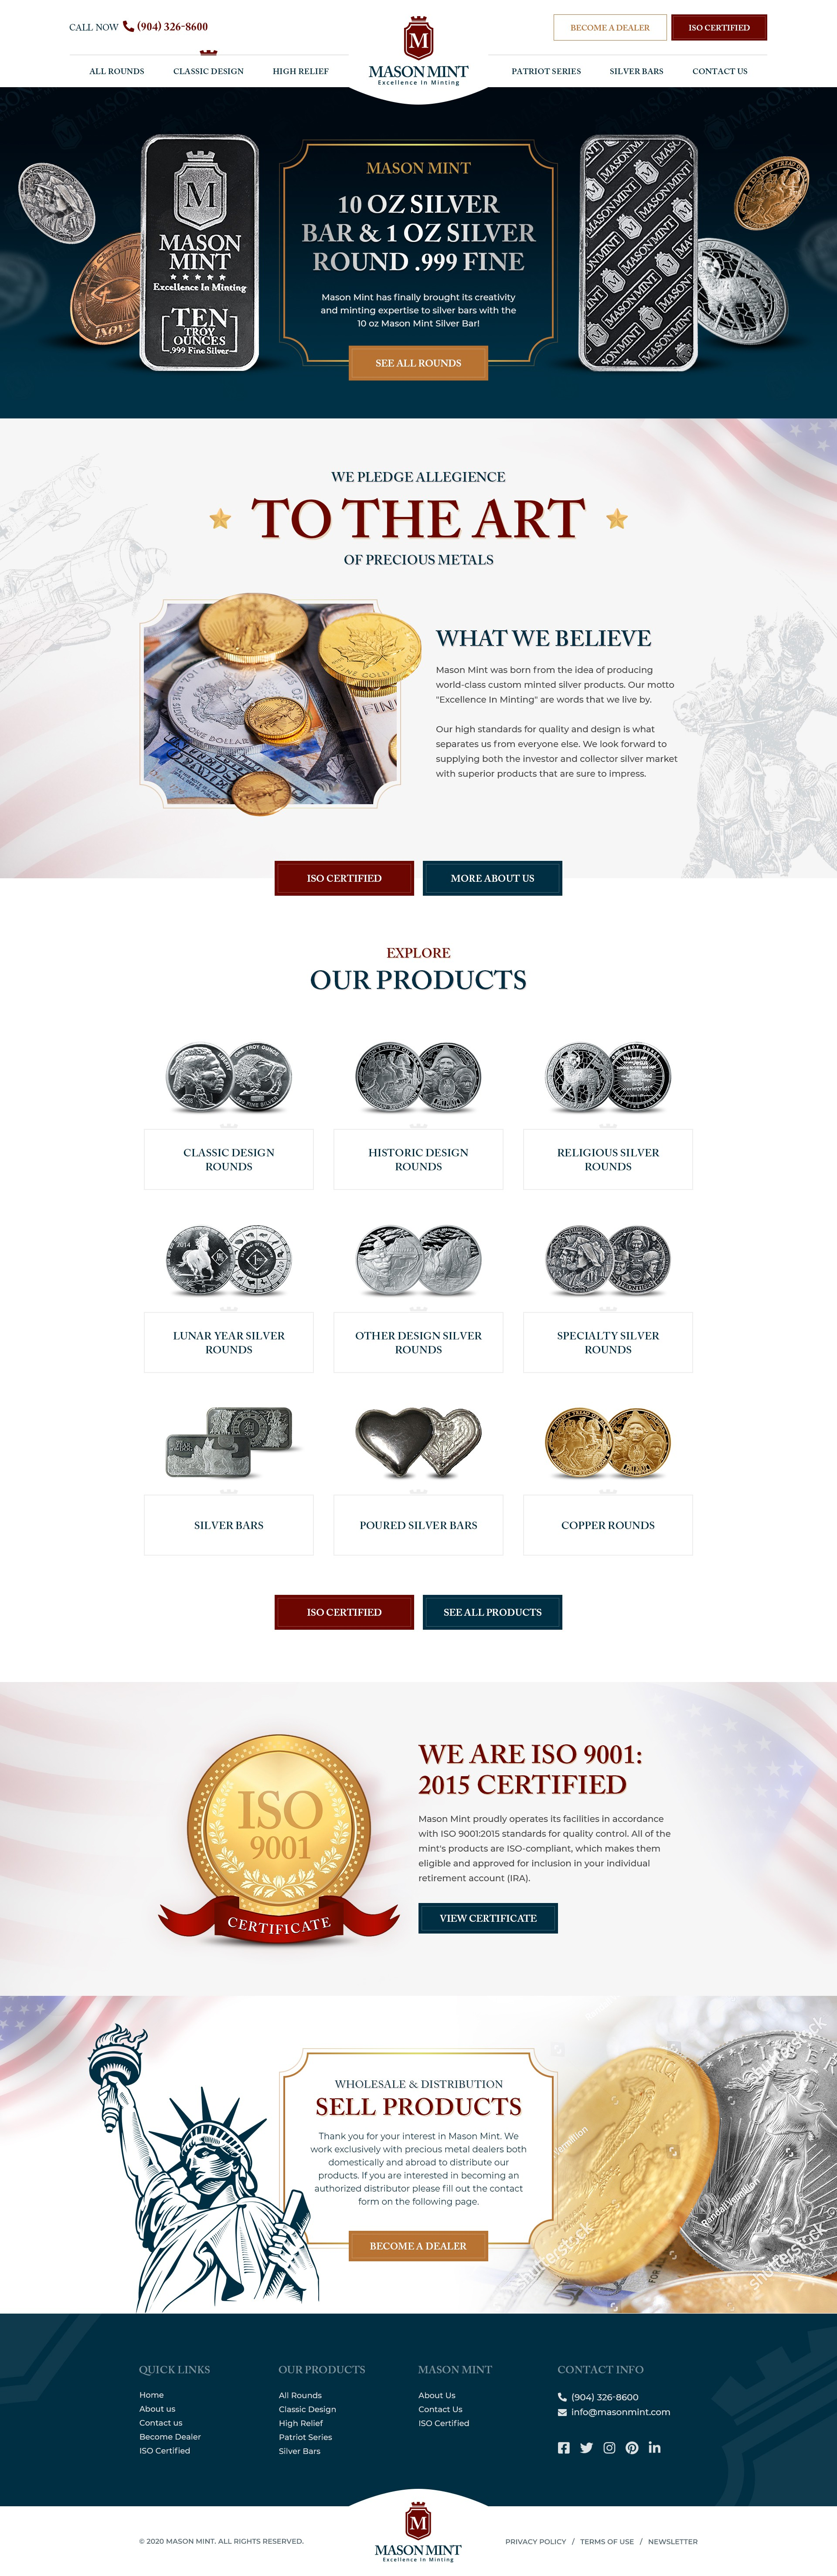 Design A Luxury Homepage For A Coin Minting Company